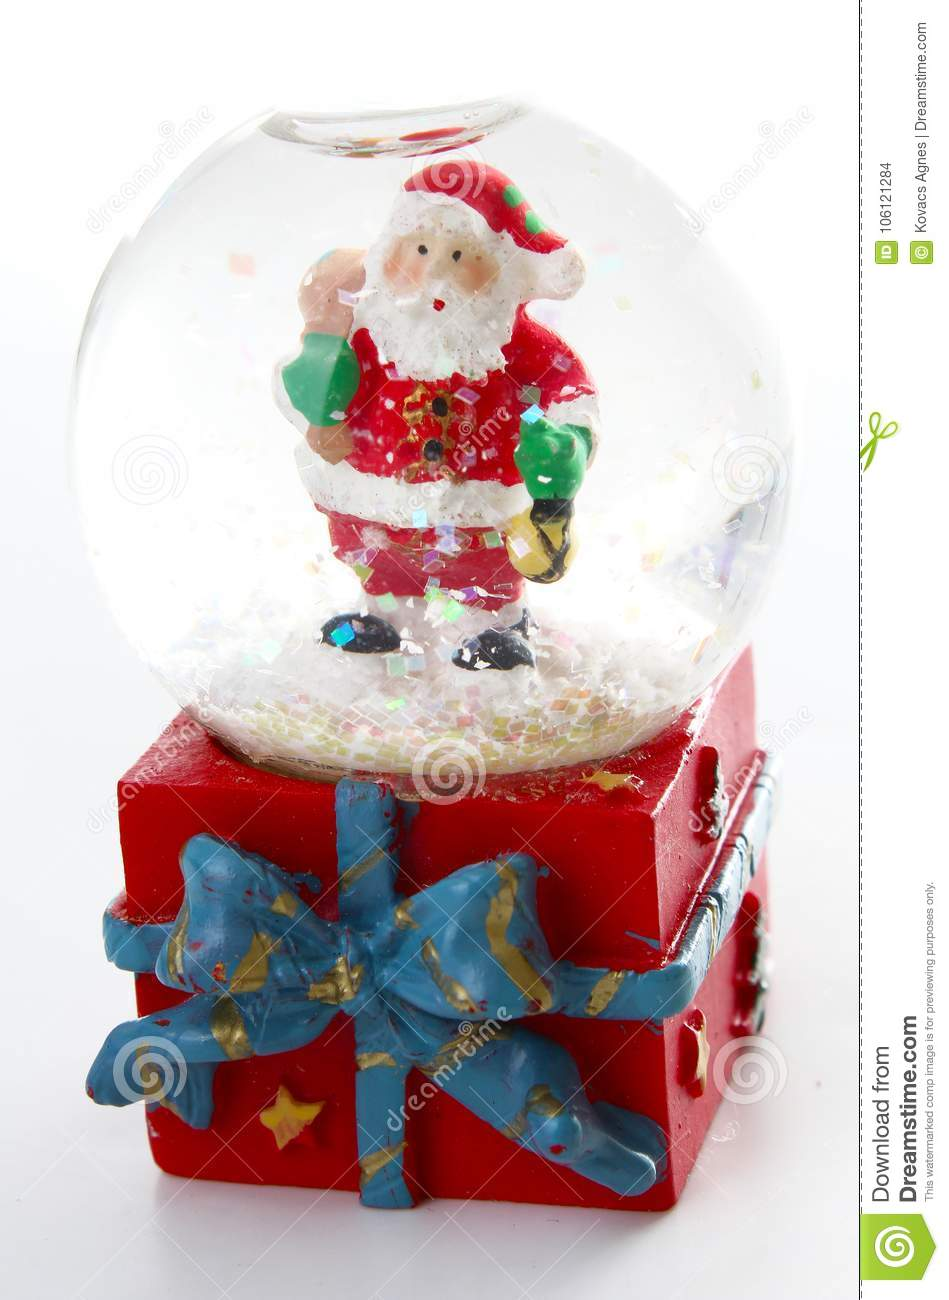 Waterglobe Christmas Waterglobe With Santa Claus Christmas Decoration Glass Ball Water Ball Globe With Snow And Santa Stock Photo Image Of Glass Water 106121284